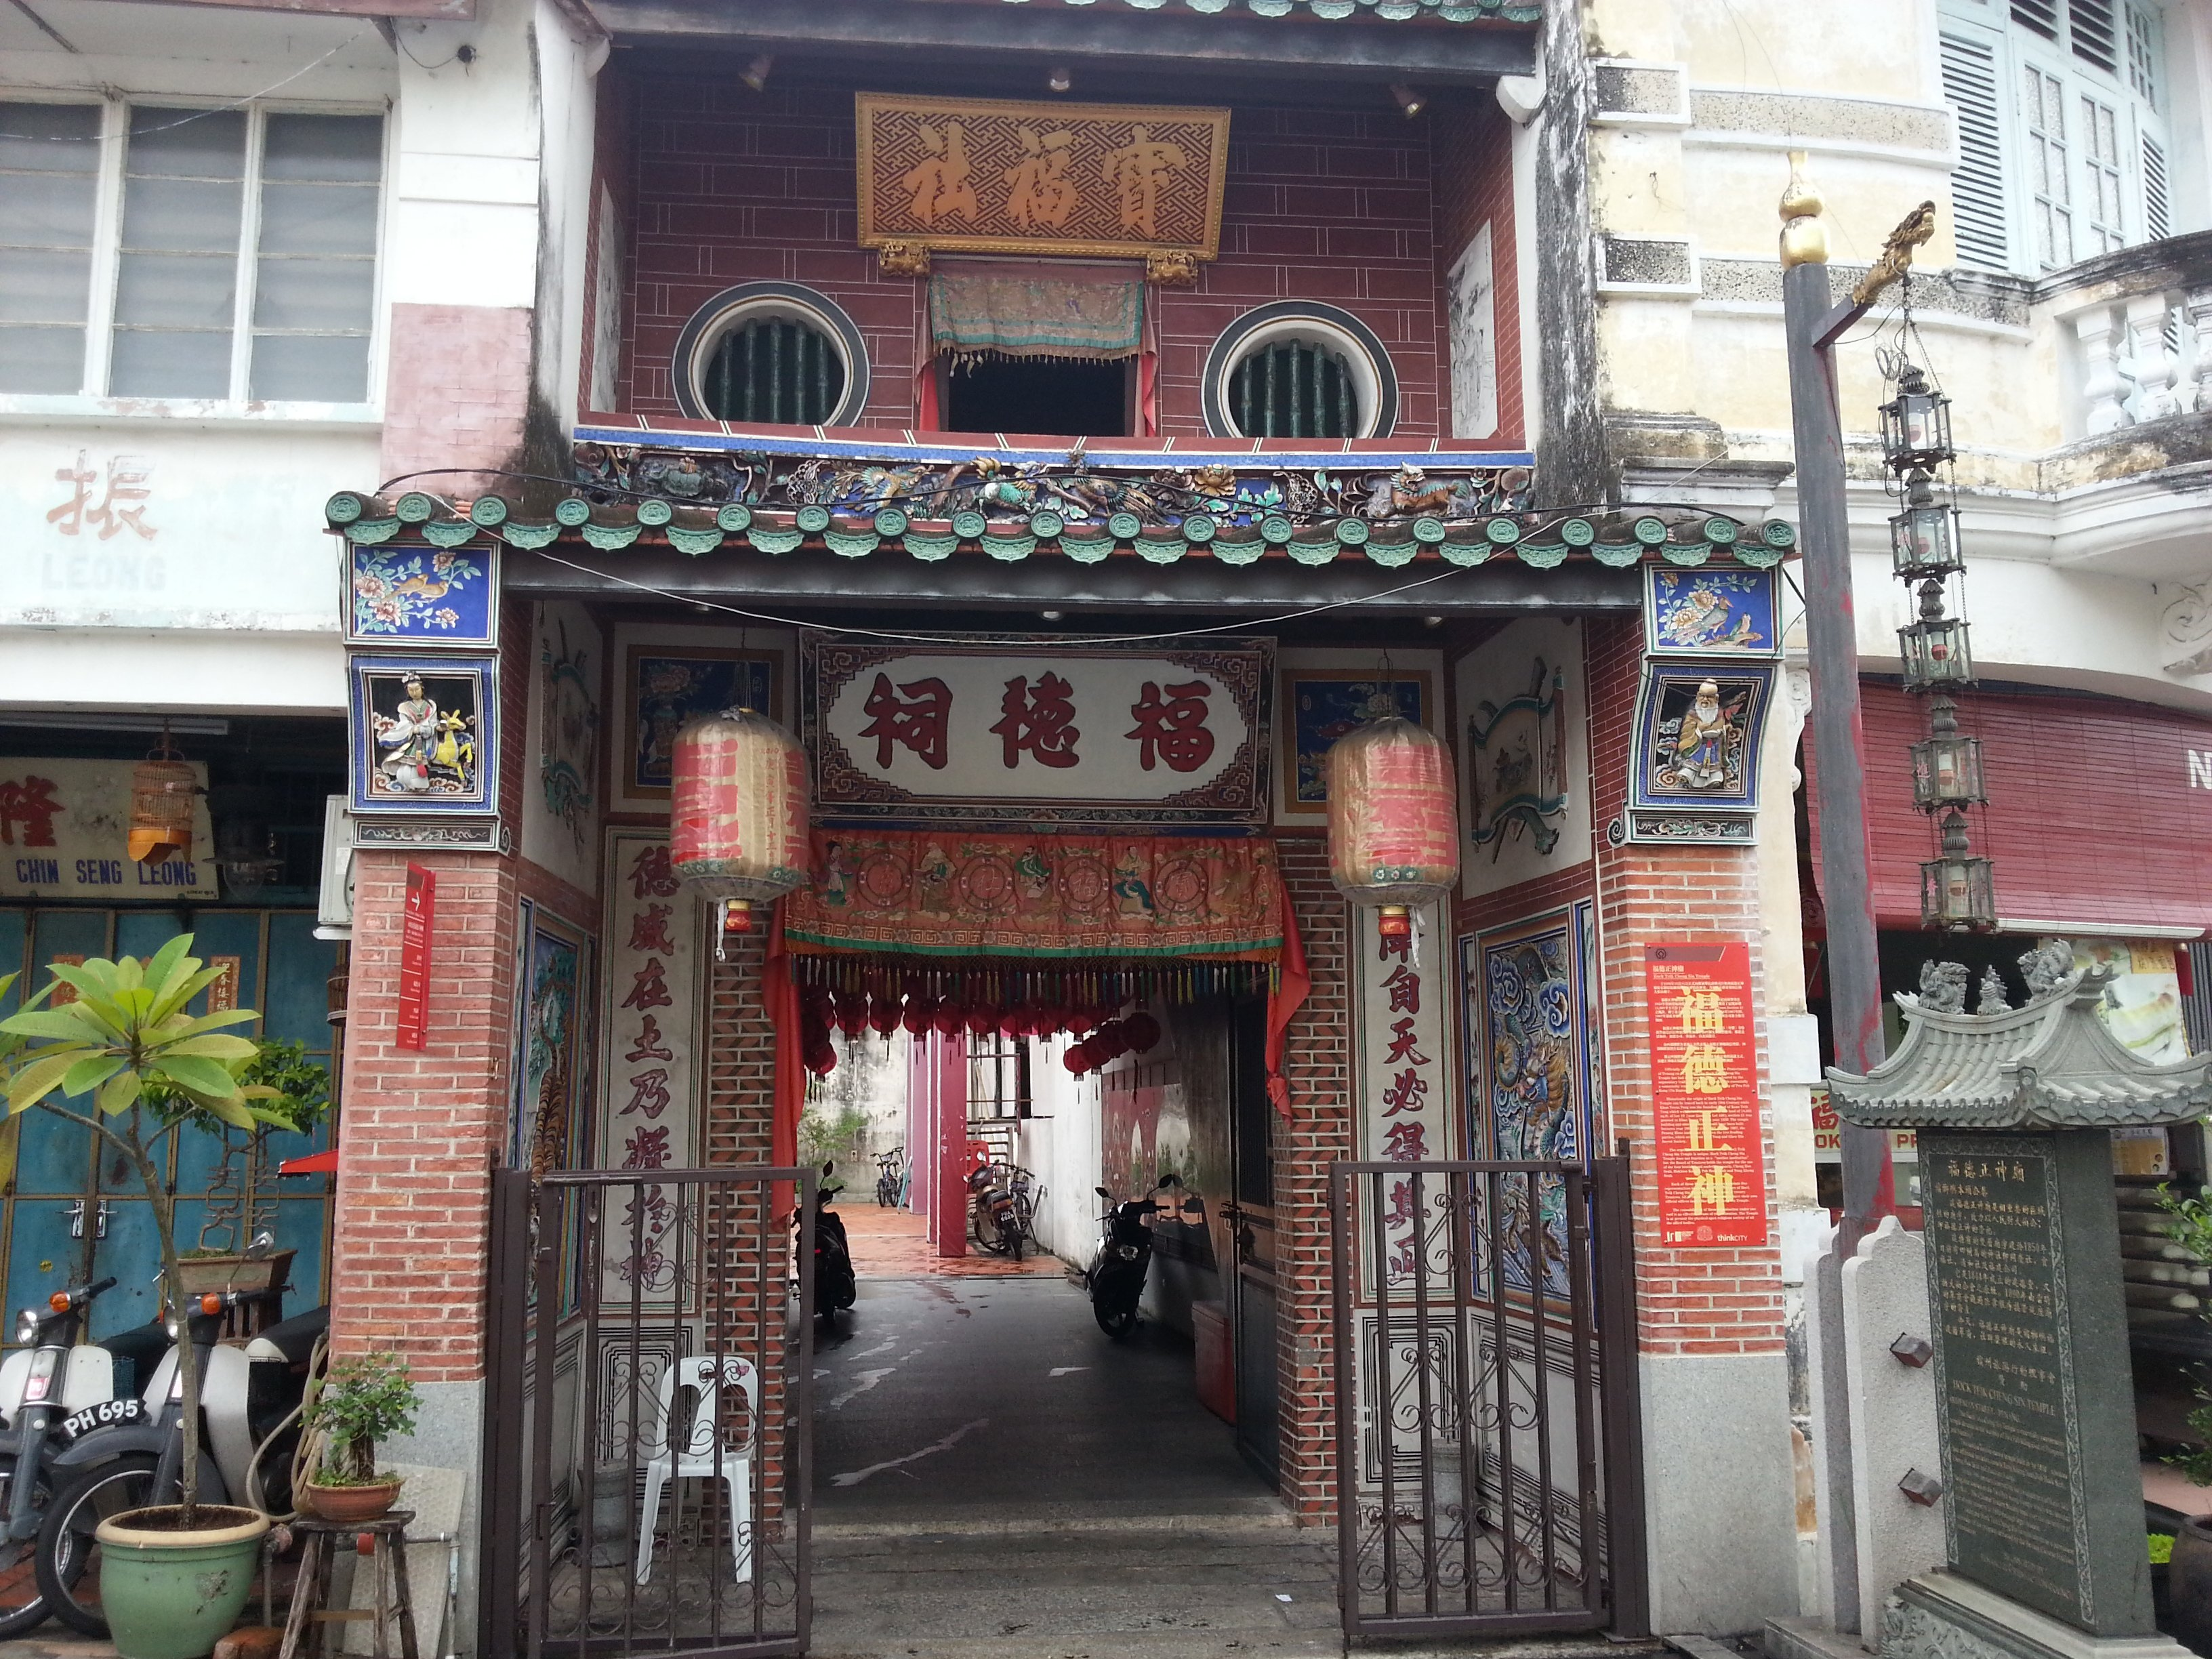 Entrance to Hock Teik Cheng Sin Temple